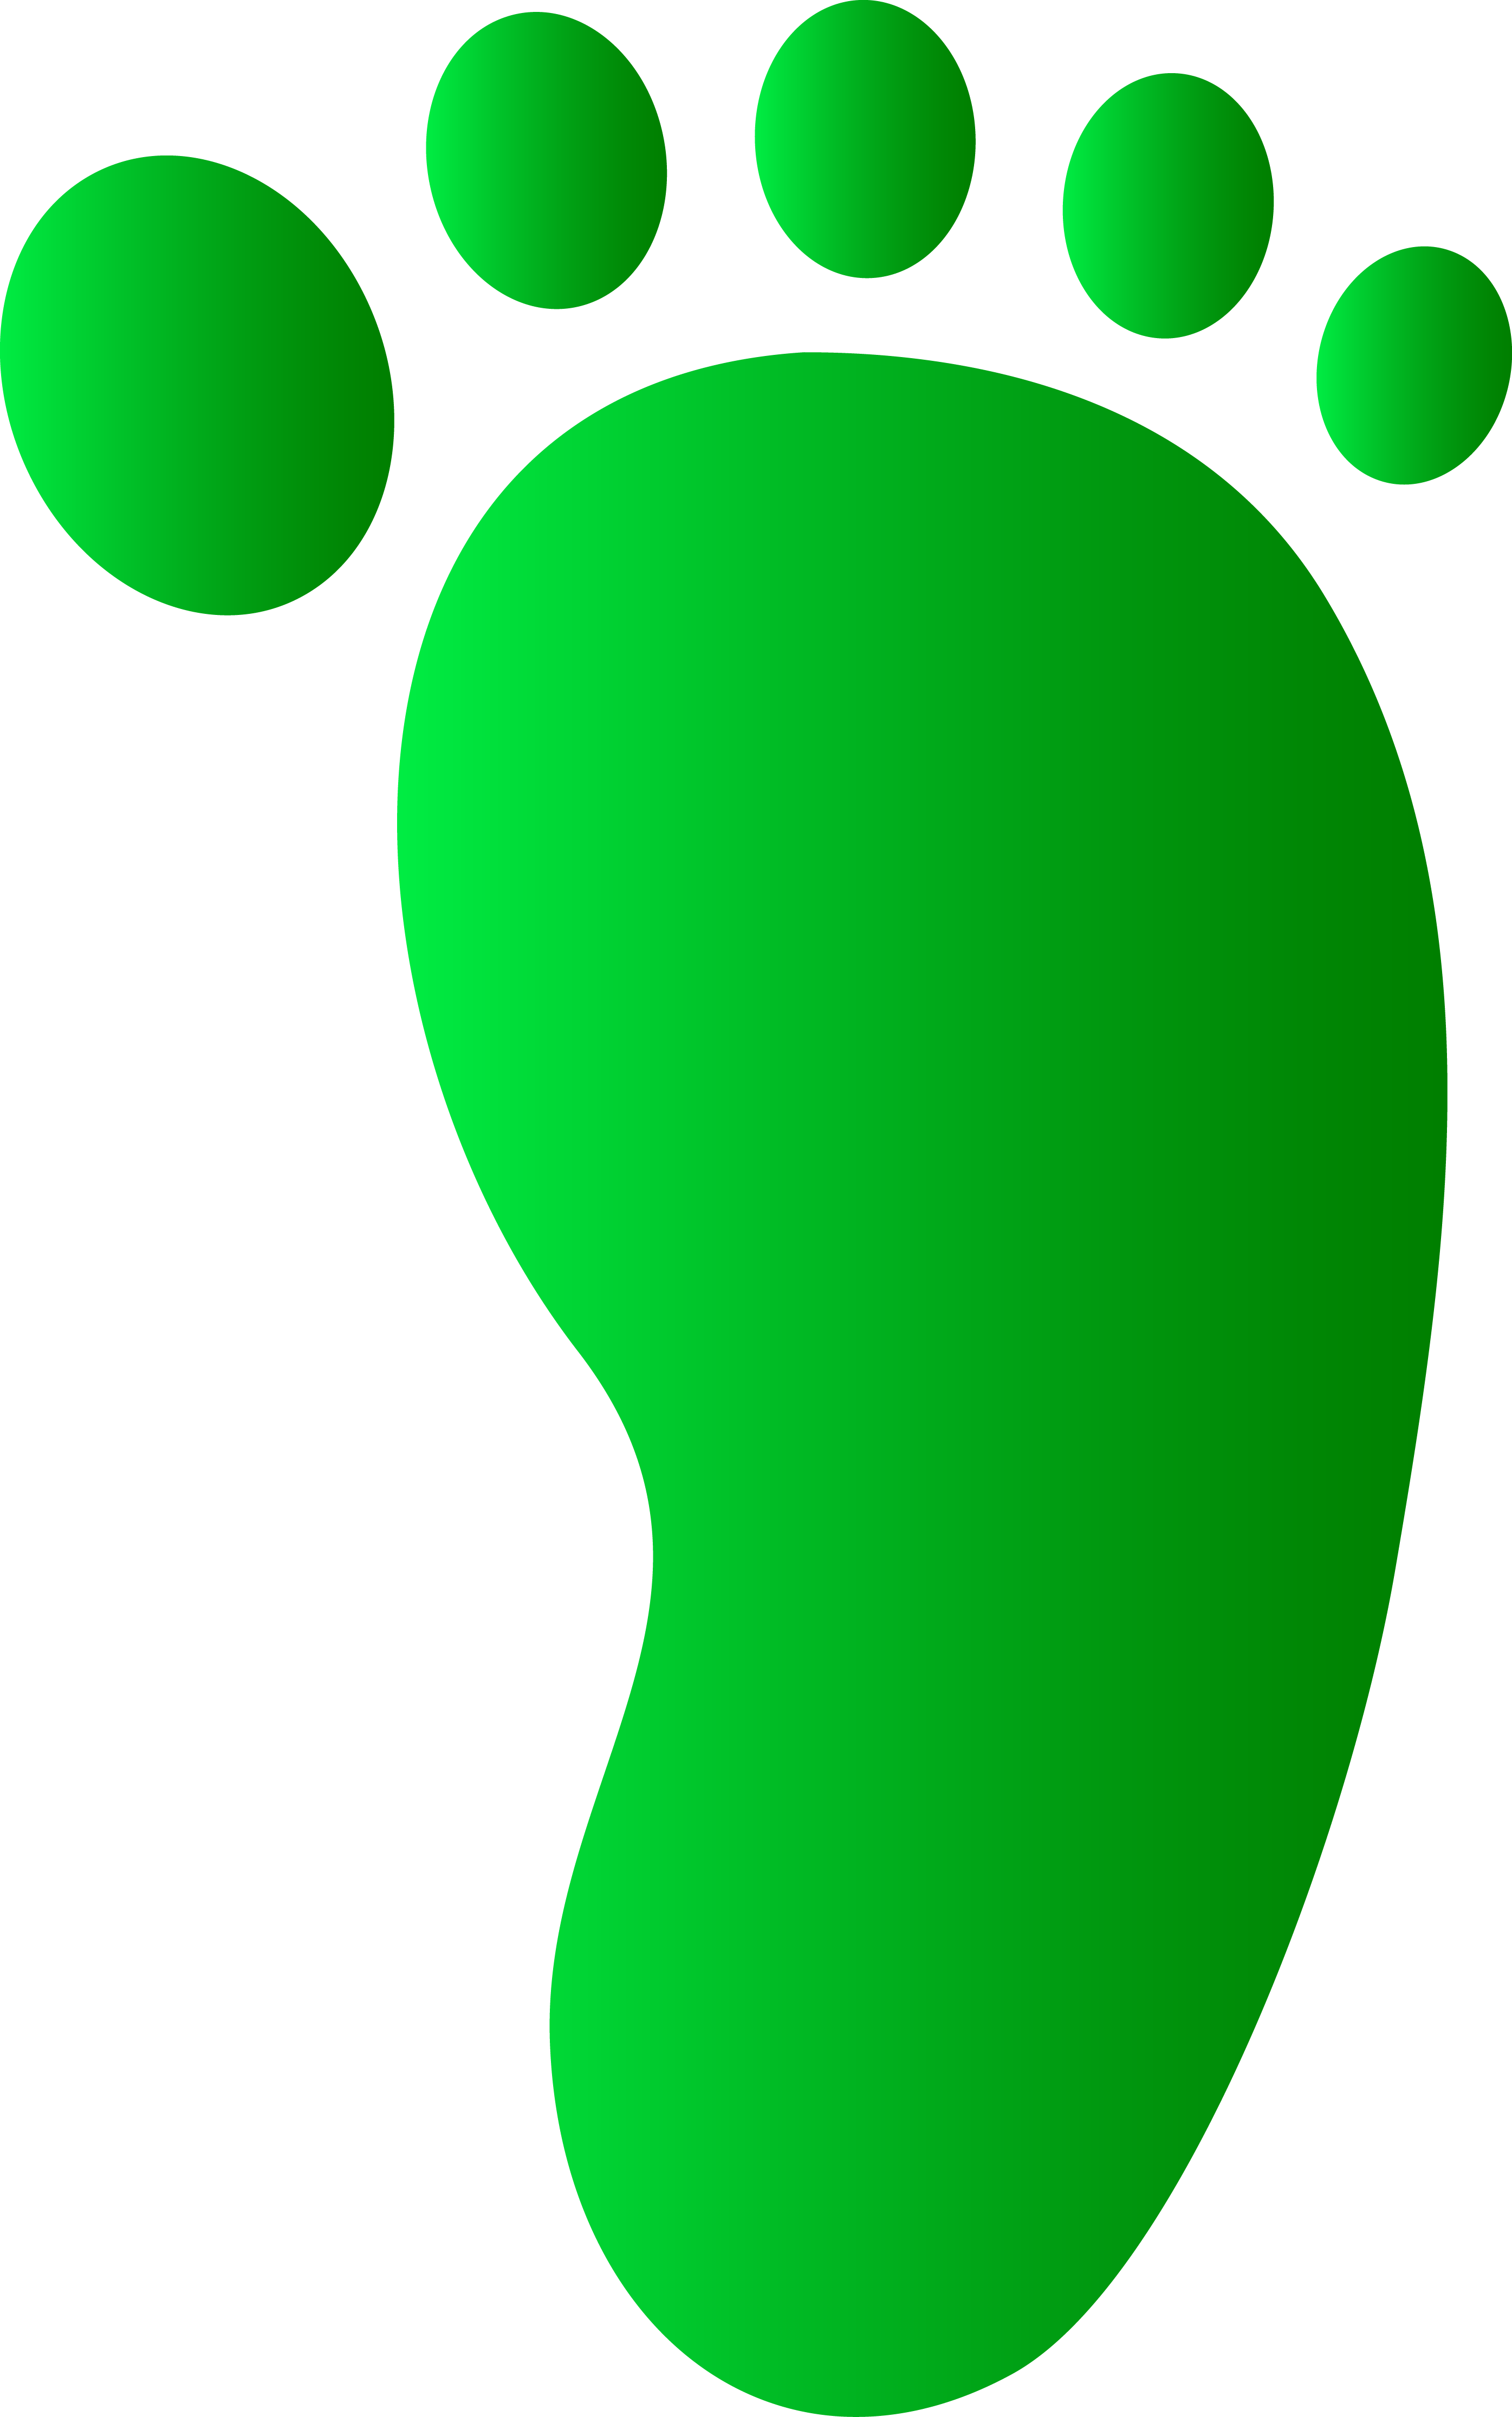 Footsteps clipart. Clip art library